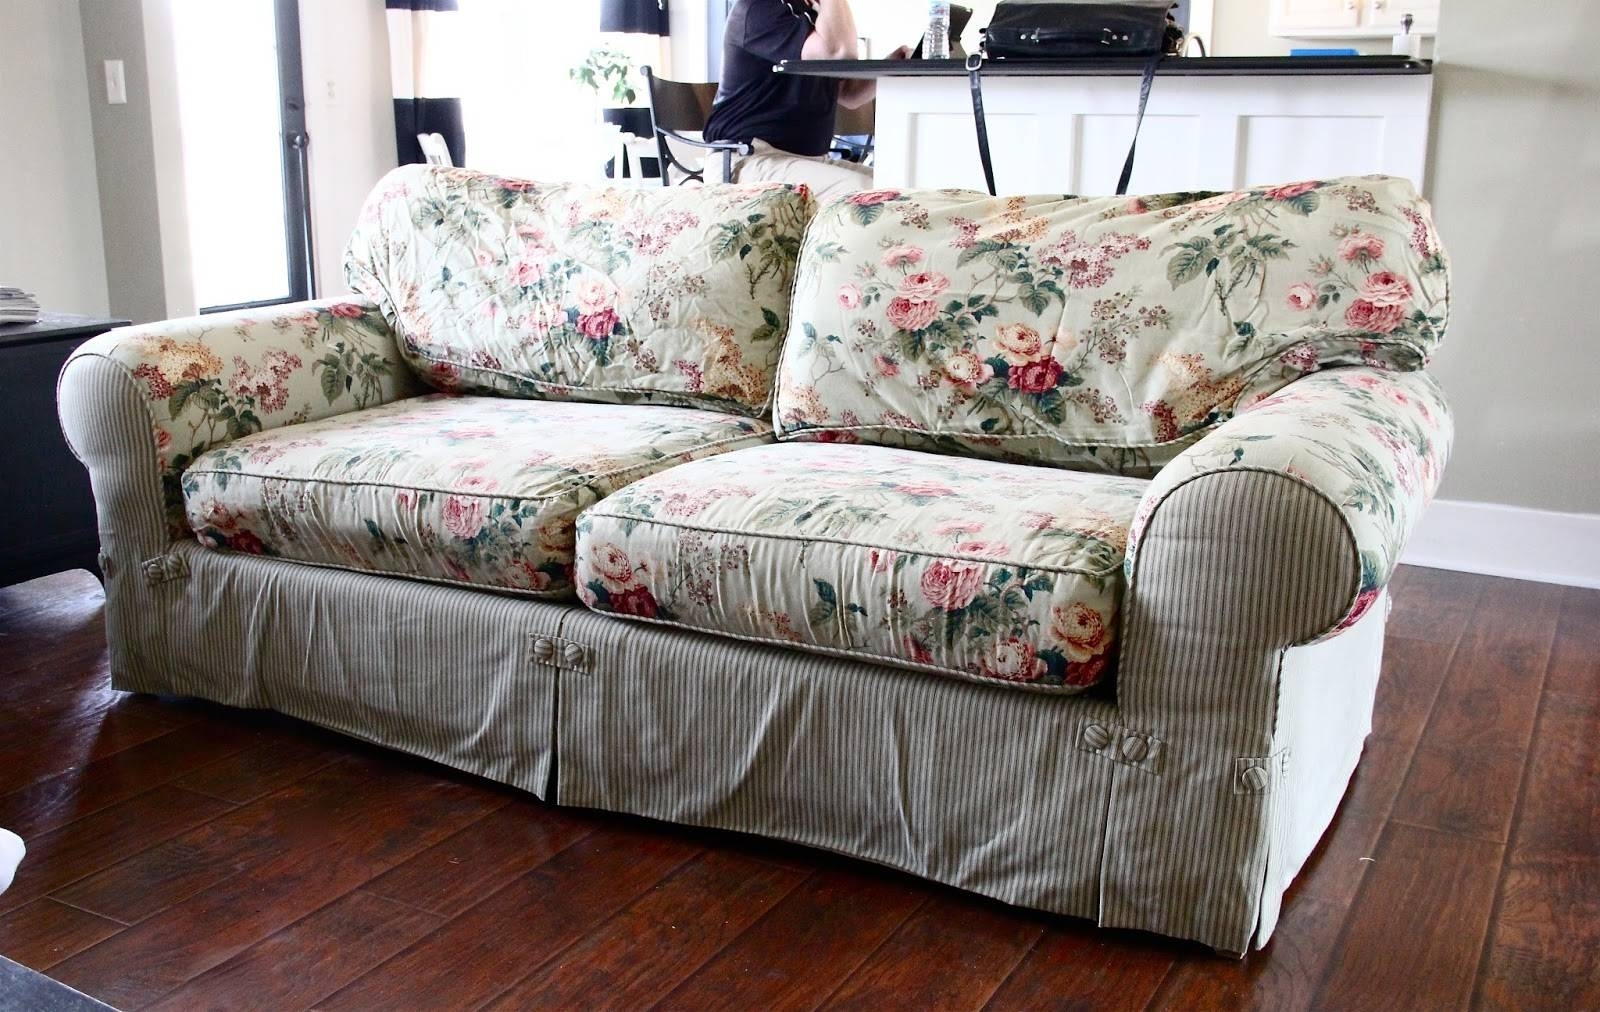 The Yellow Cape Cod: Ten Year Old Sofa Makeover with regard to Floral Slipcovers (Image 14 of 15)